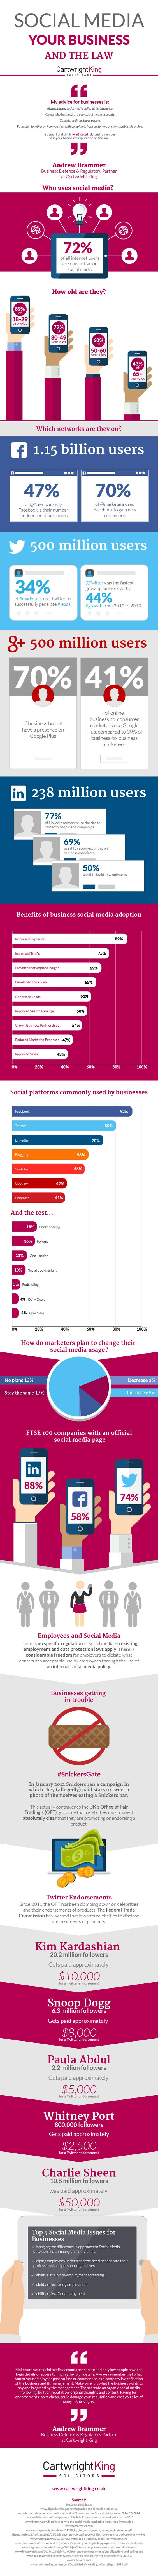 Social Media, Your Business And The Law #Infographic | via #BornToBeSocial